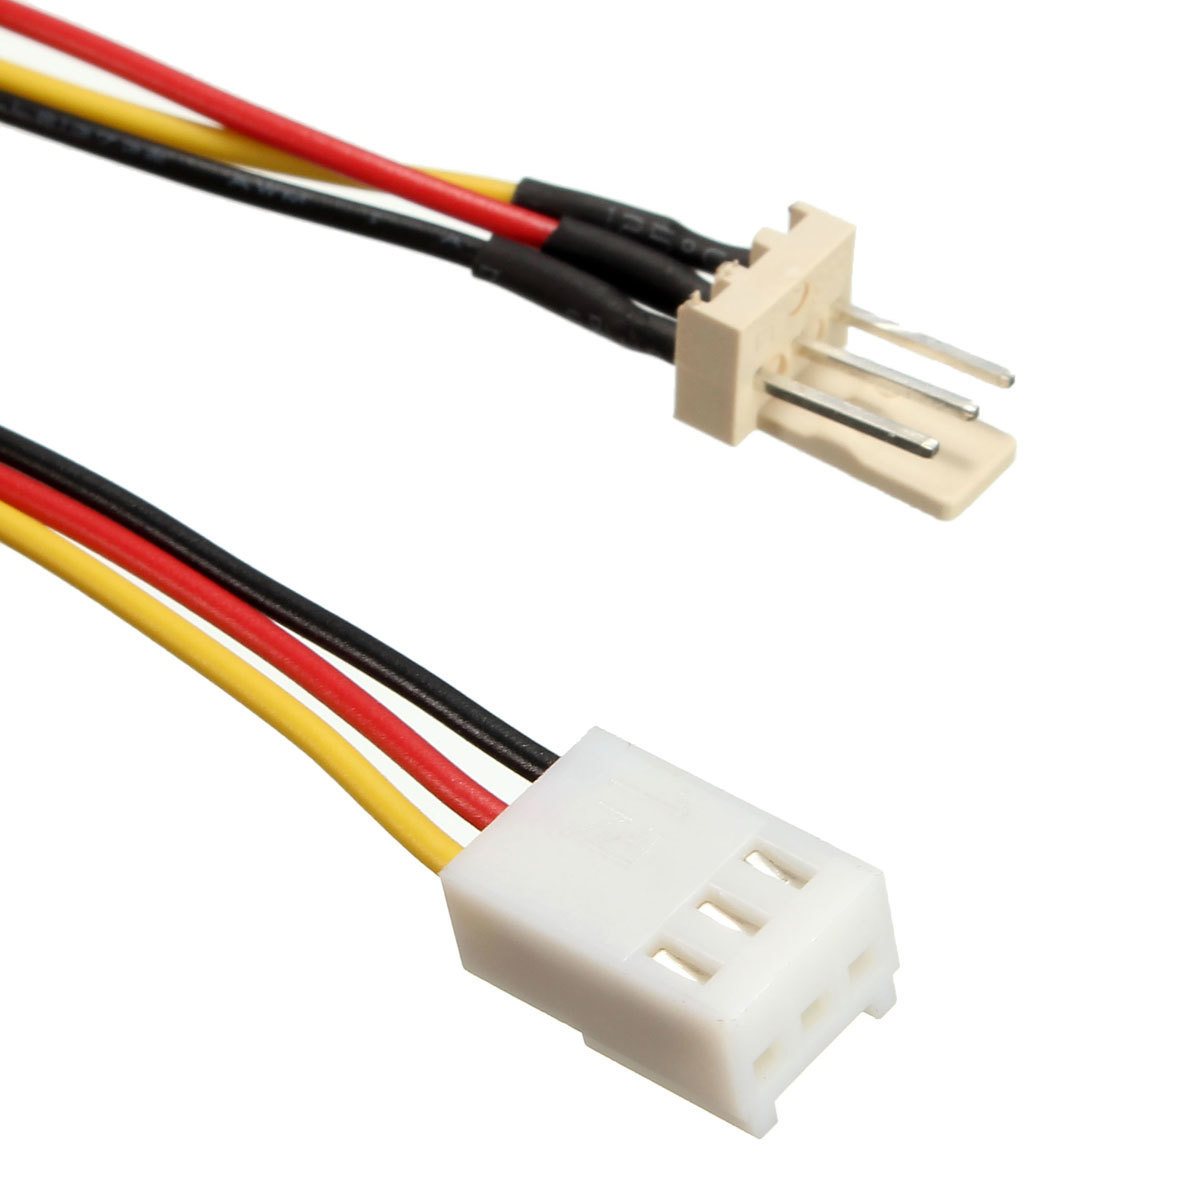 Philippines 3 Pin Male To Female Cooling Fan Extension Adapter Power 3pin 2pin Y Cable Splitter Wire On Wires For Pc Computer